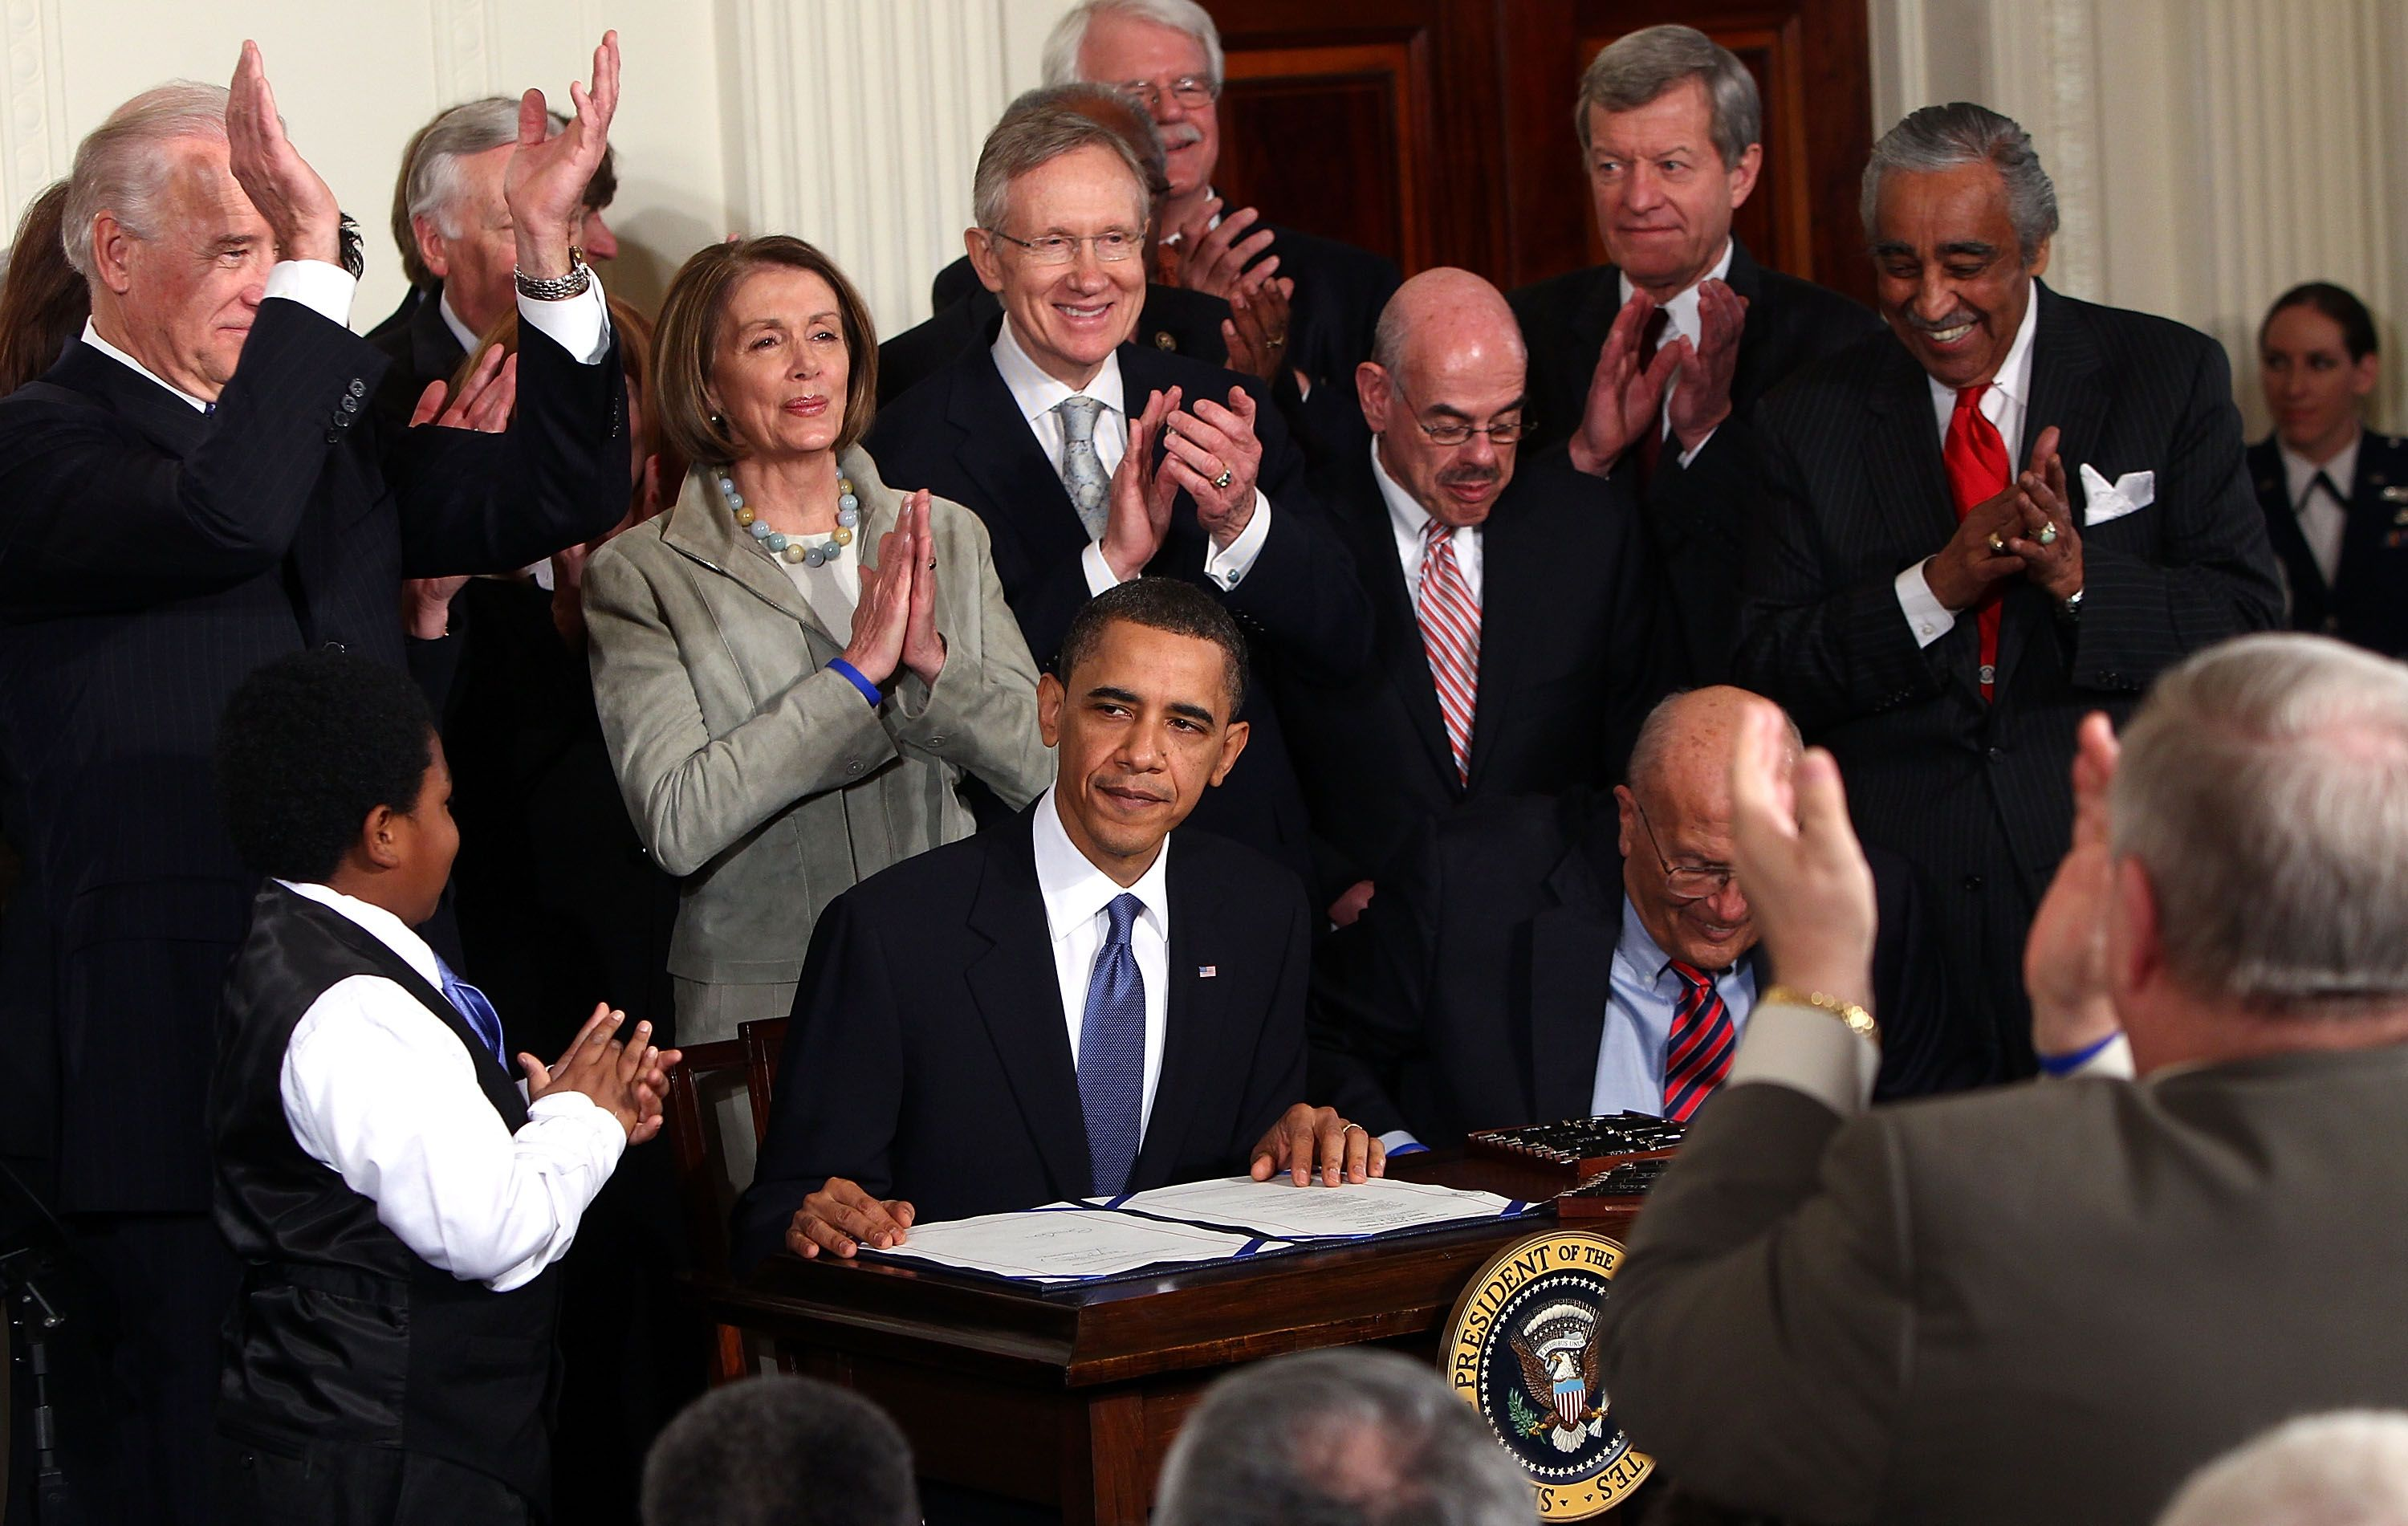 The Affordable Care Act Could Fall Courtesy of Nonsense Conservative Legal Arguments